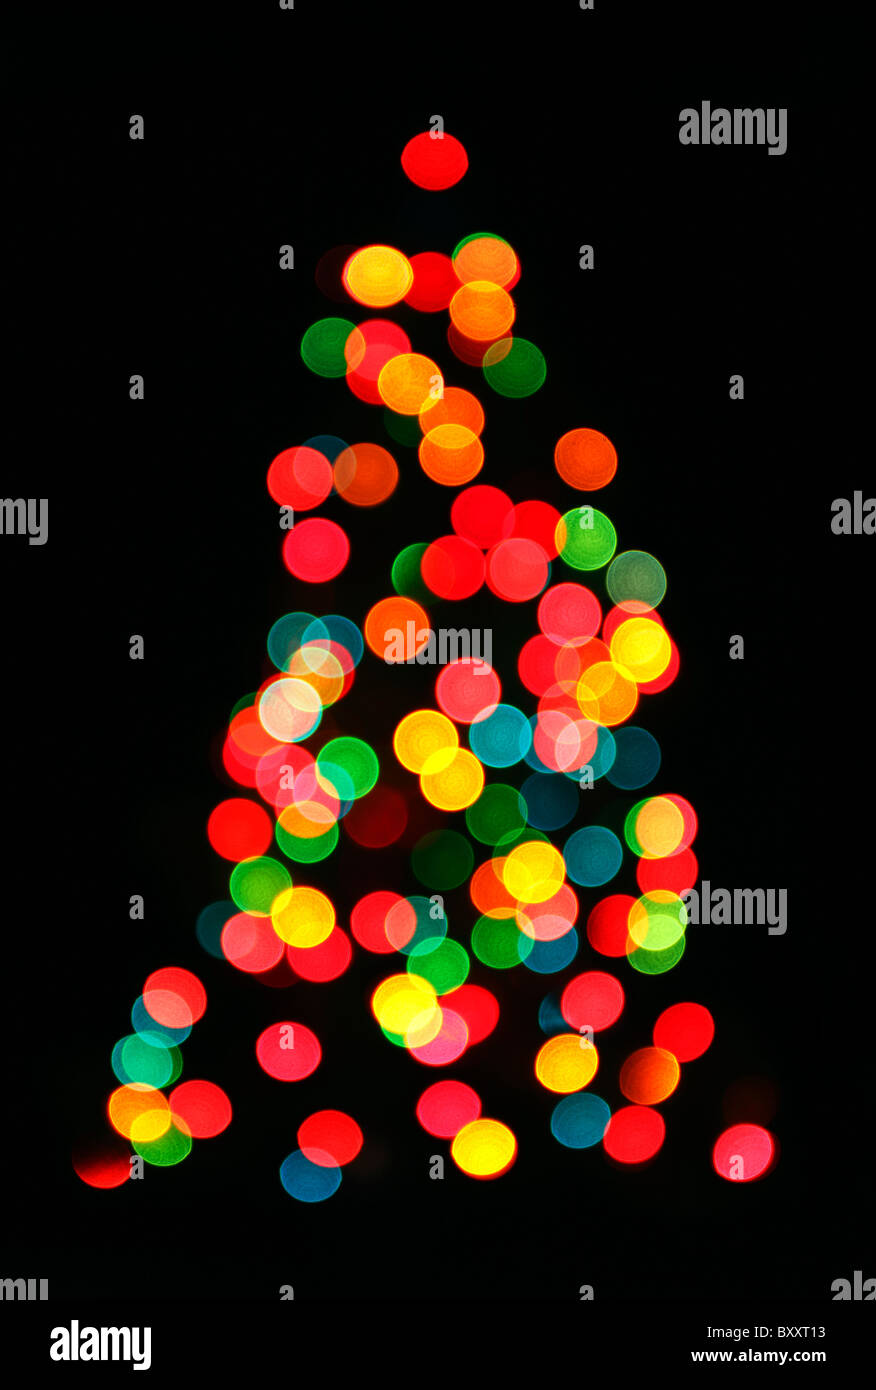 Blurred, de-focused Christmas Tree - Stock Image